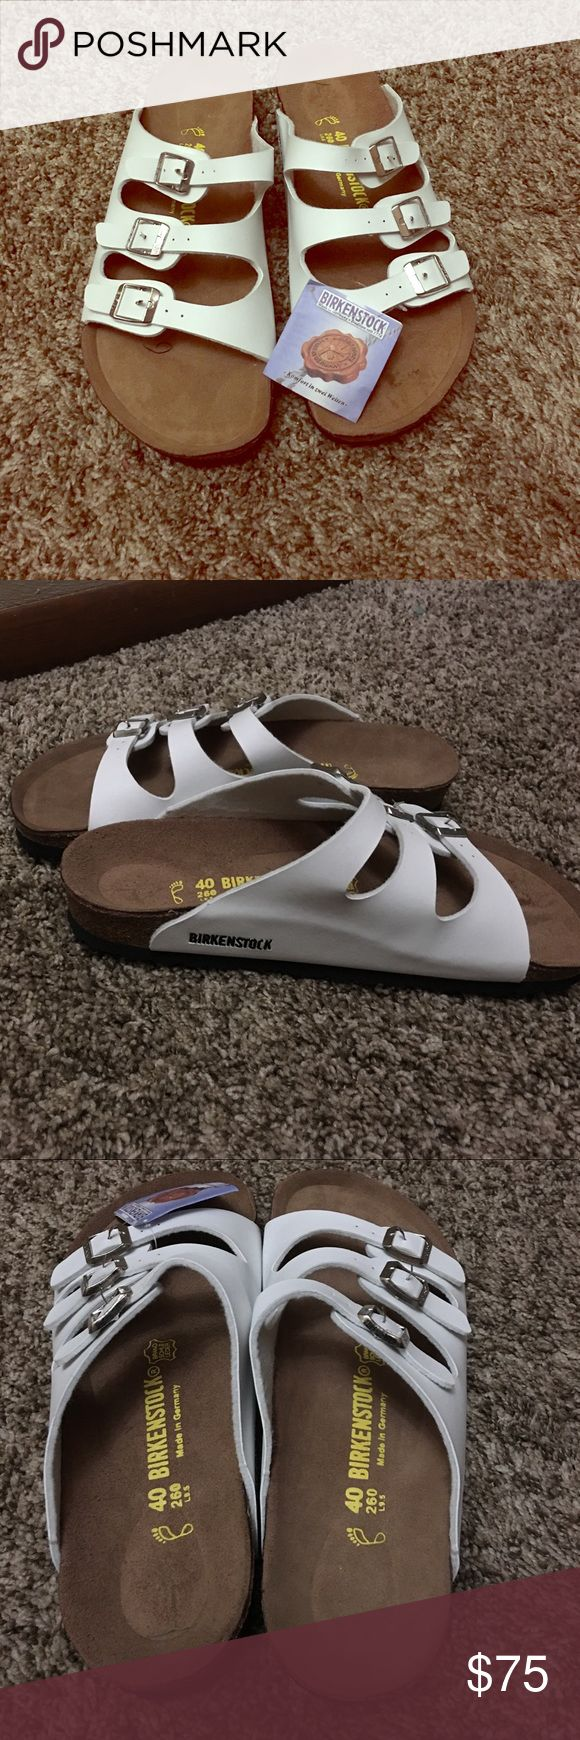 White Birkenstock Sandals Brand new with tags Brand new with tags!  White three strap Birkenstock sandals! Birkenstock Shoes Sandals